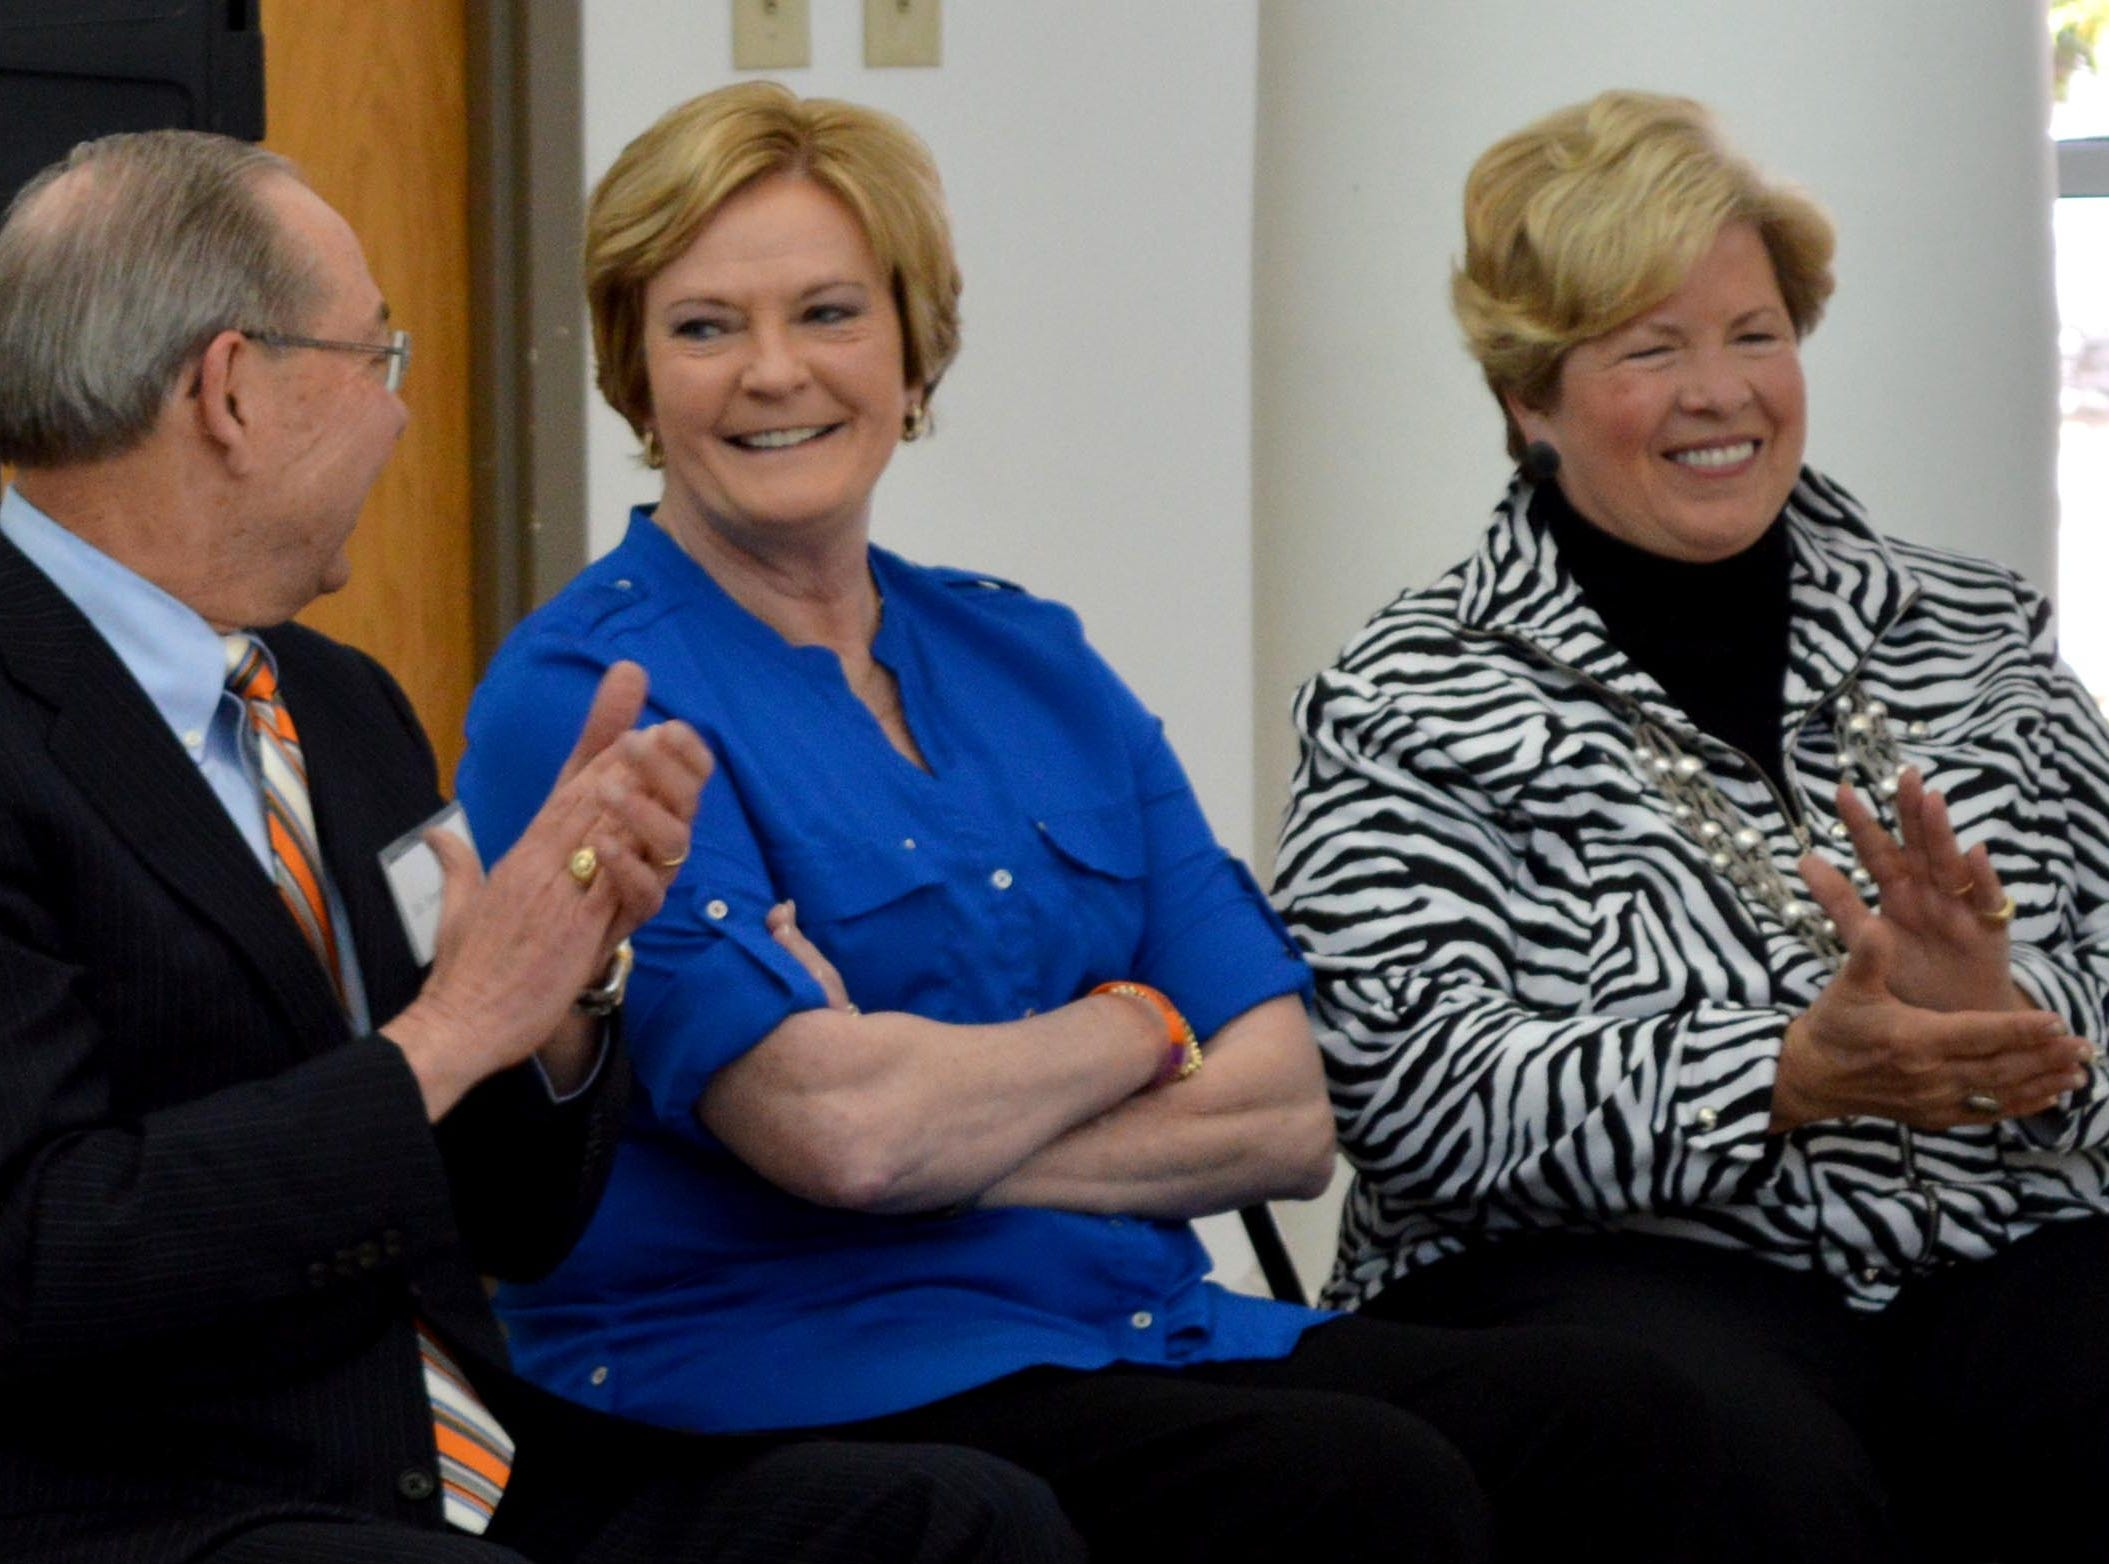 UT Women's Basketball Coach Emeritus coach Pat Summitt, center, seated with UT Chancellor Jimmy Cheek, and UT Women's Athletic Director Emeritus Joan Cronan is honored with the dedication of the Tennessee Blue Book on Friday, Feb. 28, 2014.